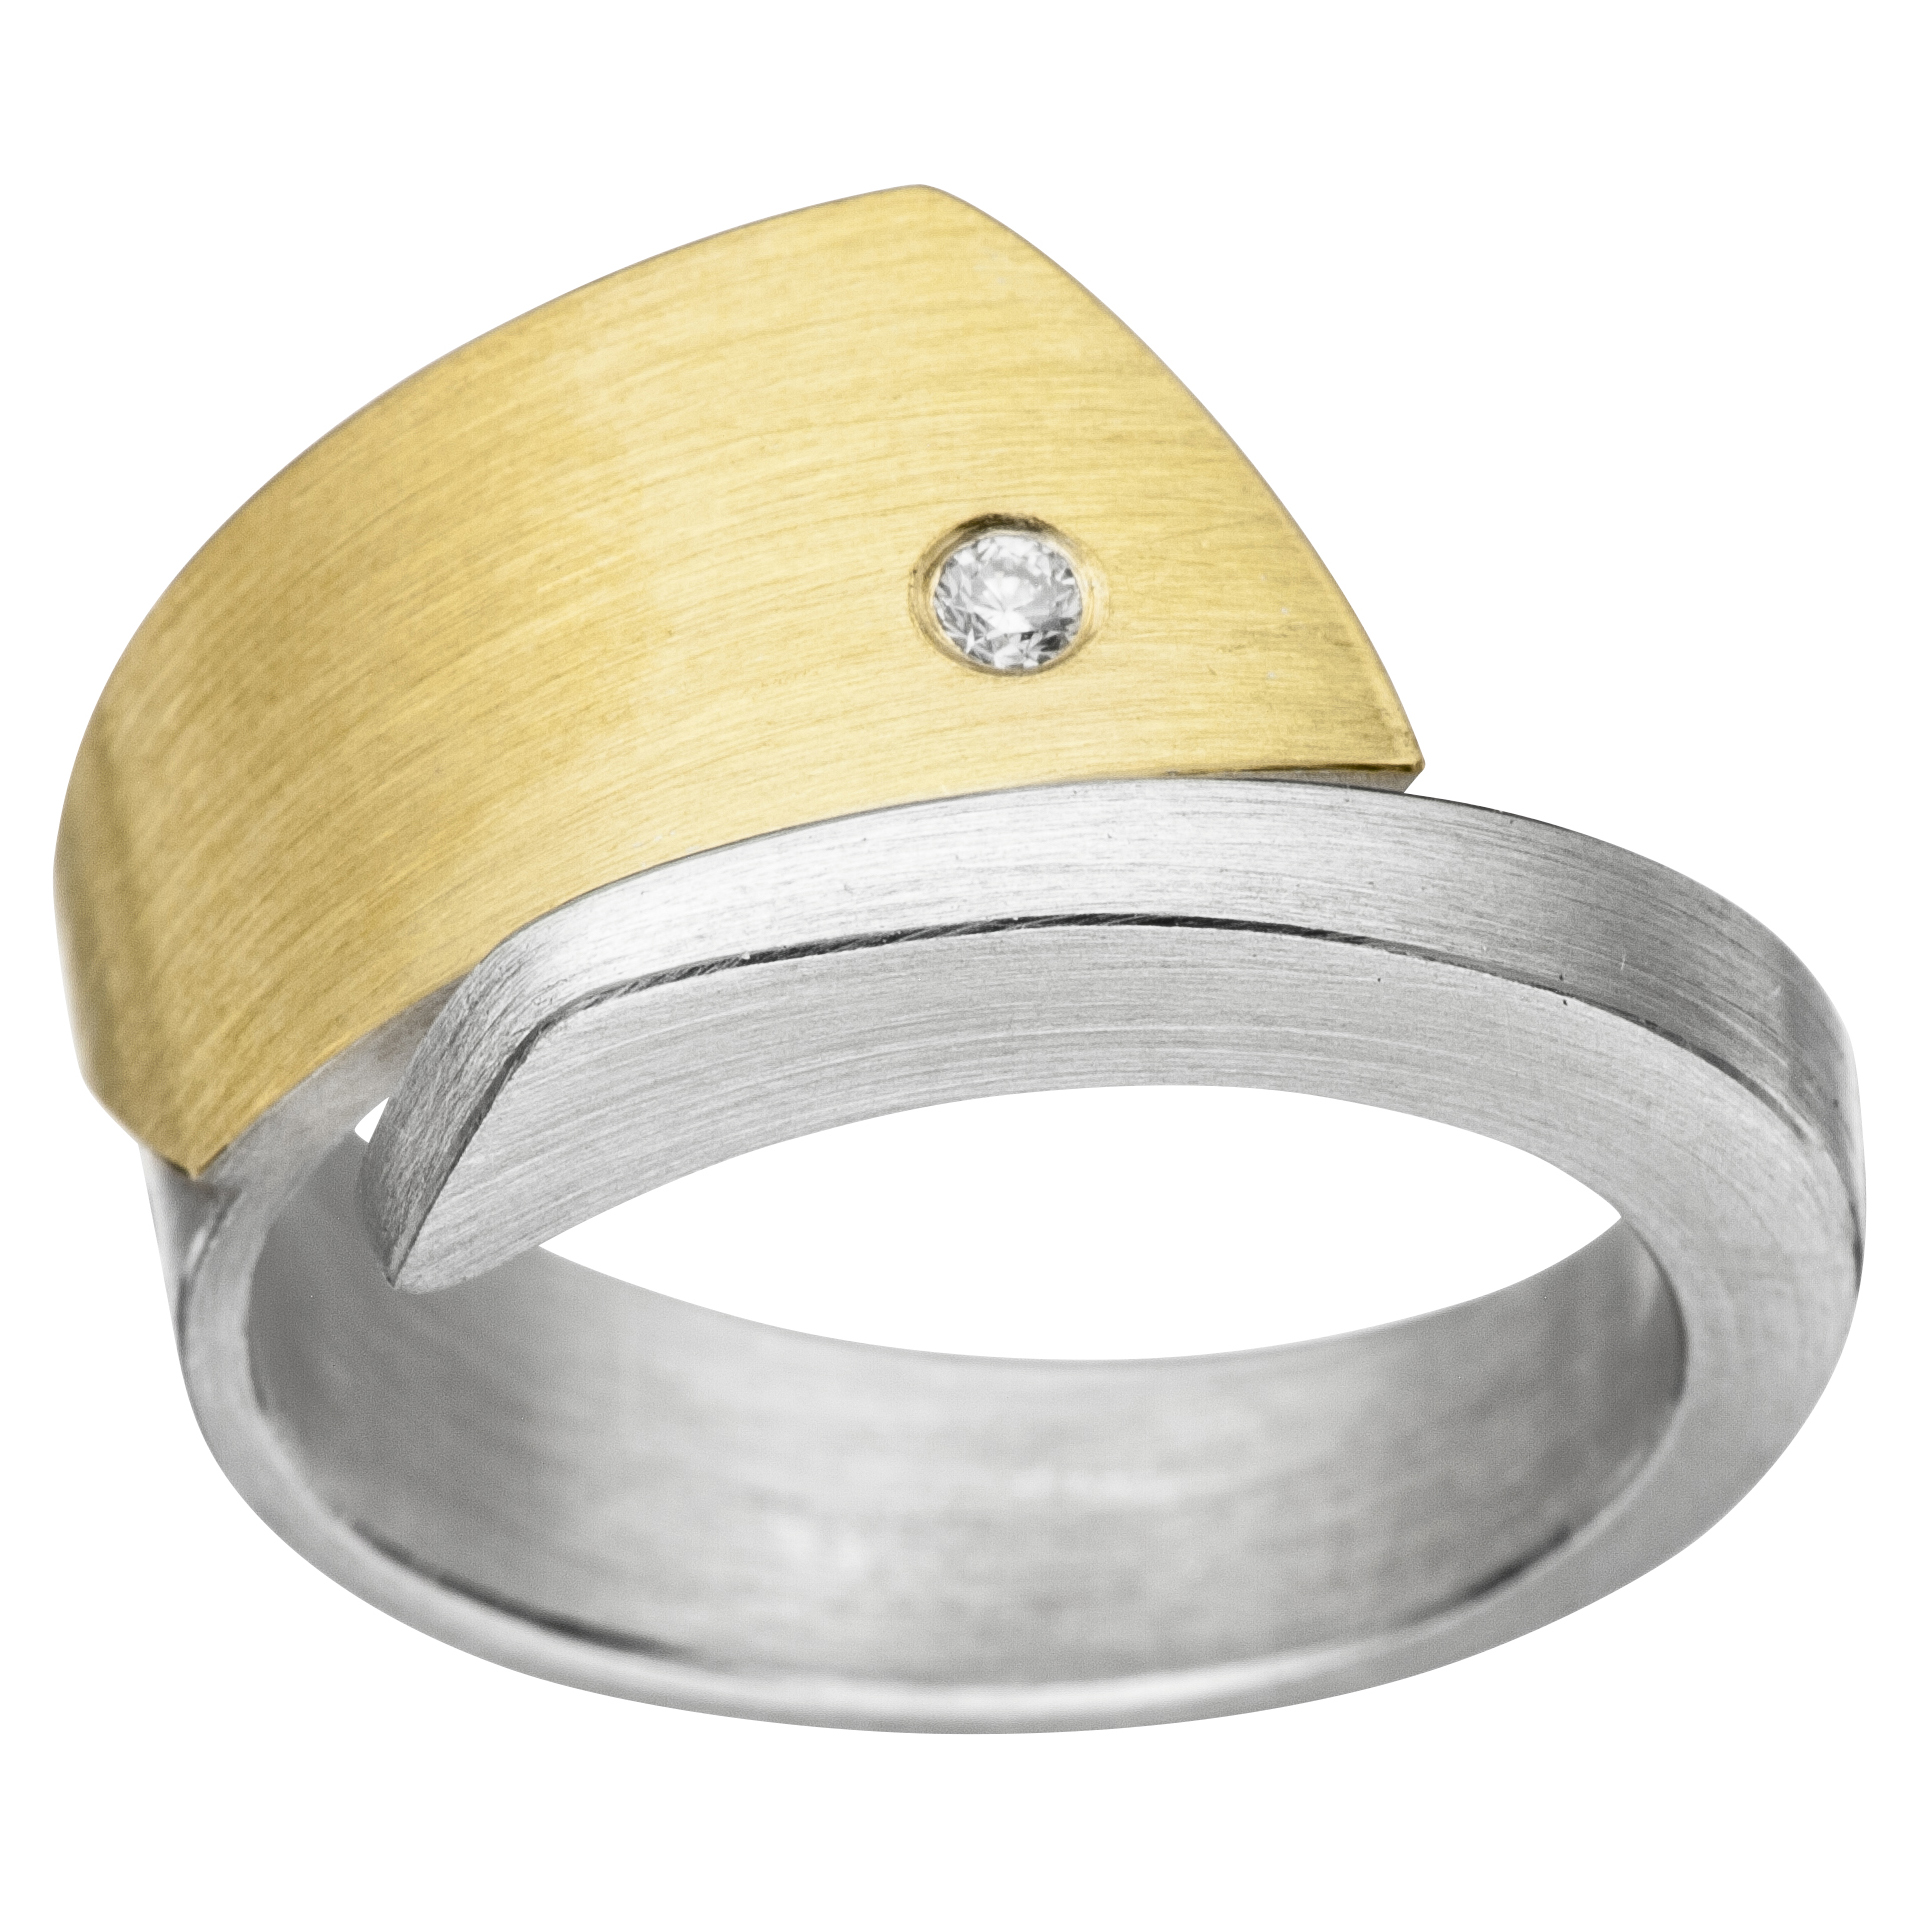 Manu Silver, 22ct Gold And Diamond Ring